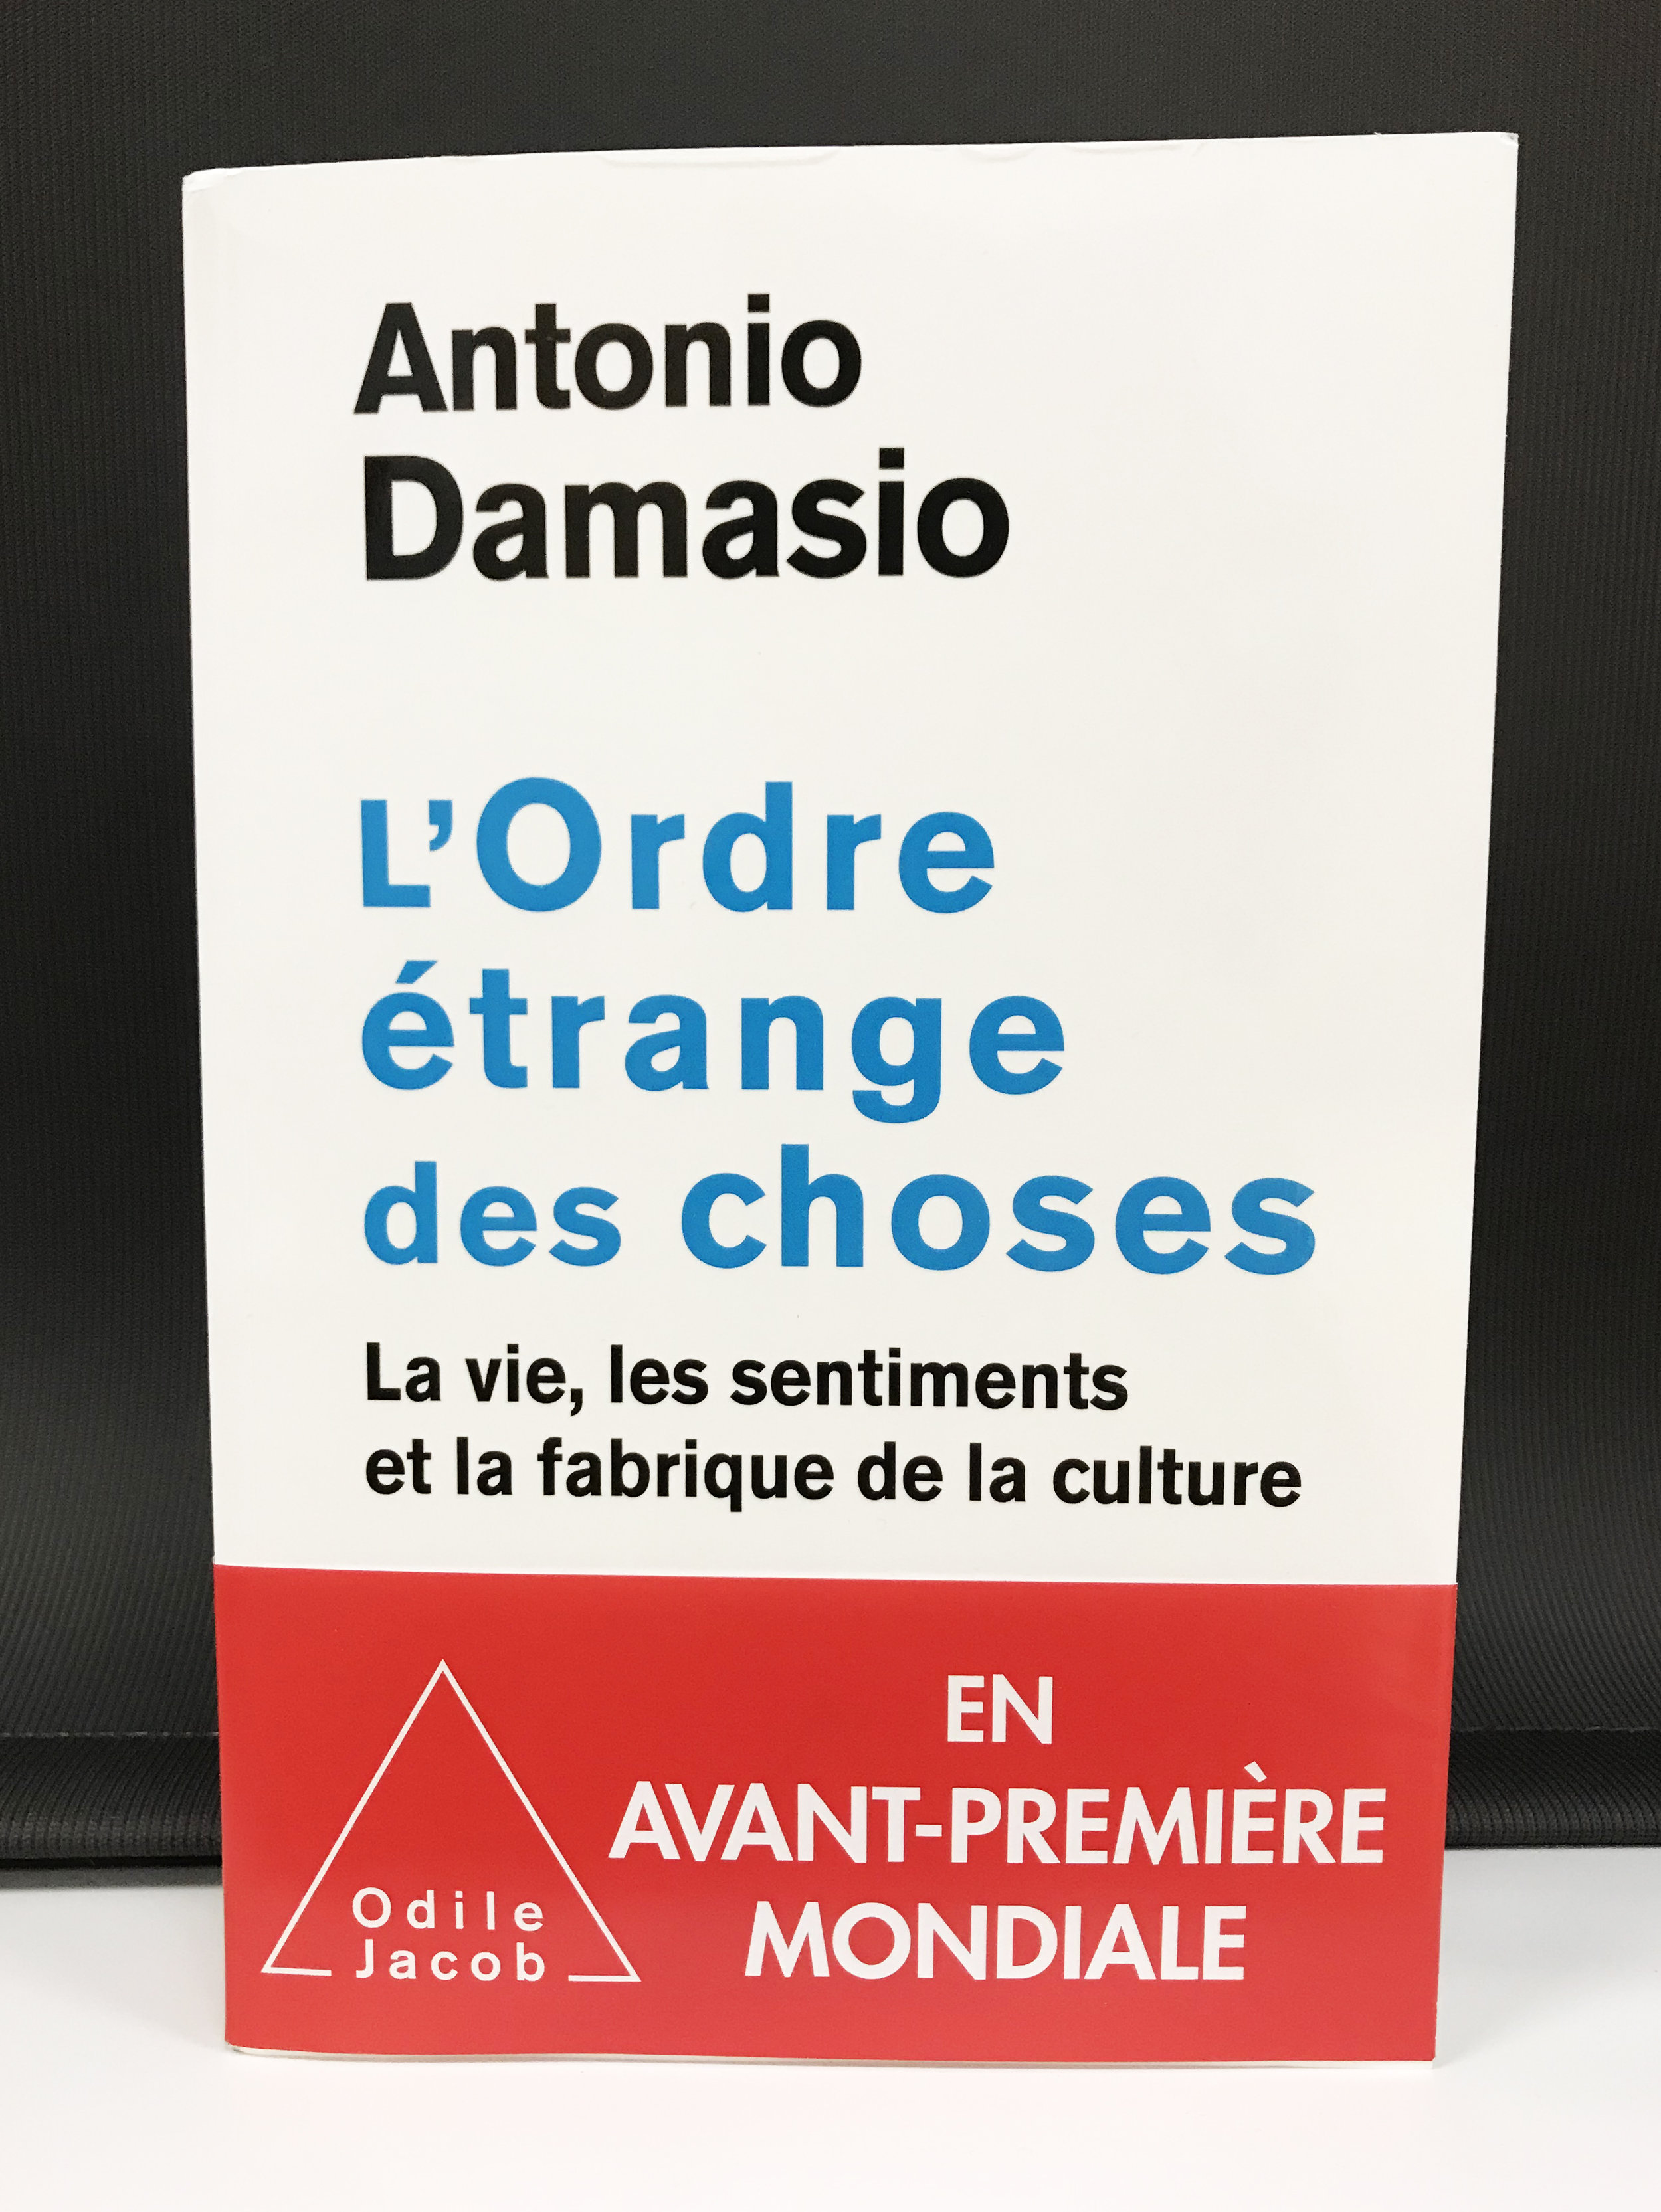 French translation published in November 2017.